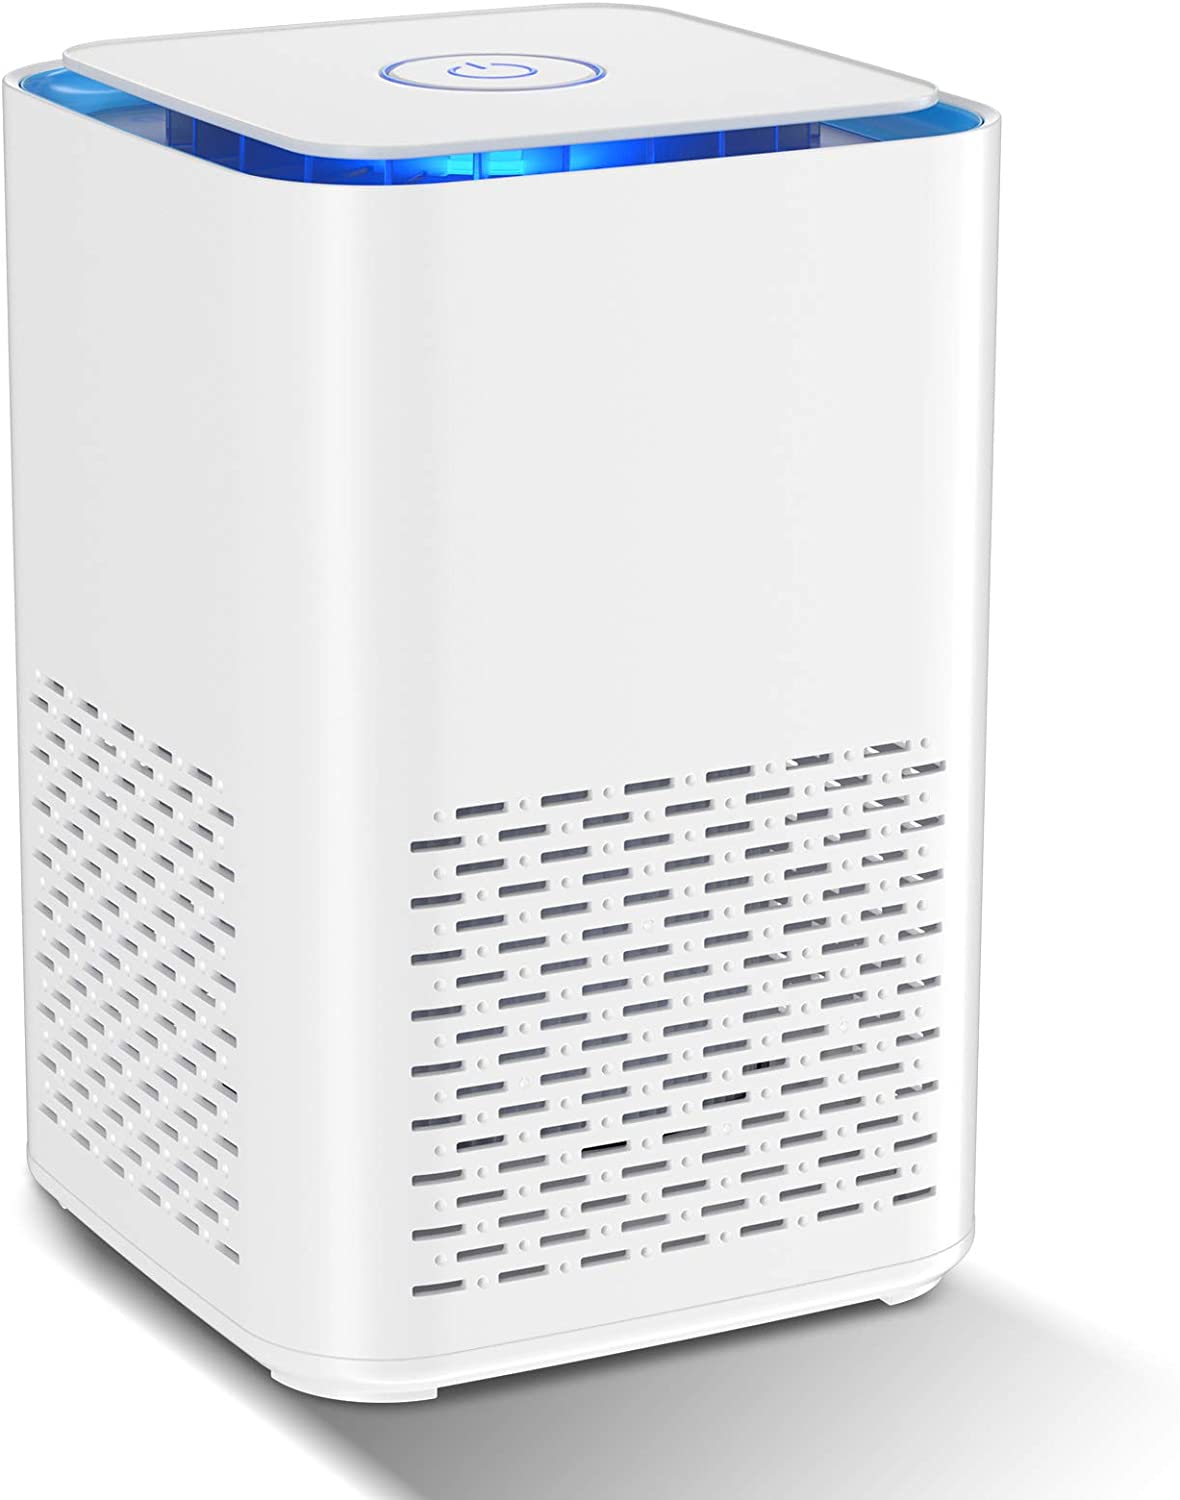 HAUEA Air Purifier for Home Compact Desktop Purifiers Filtration with True HEPA Filter Low Noise Portable Air Cleaner for Room and Offices, Remiving Allergens, Dust & Pollen, Smoke and Pet Dander